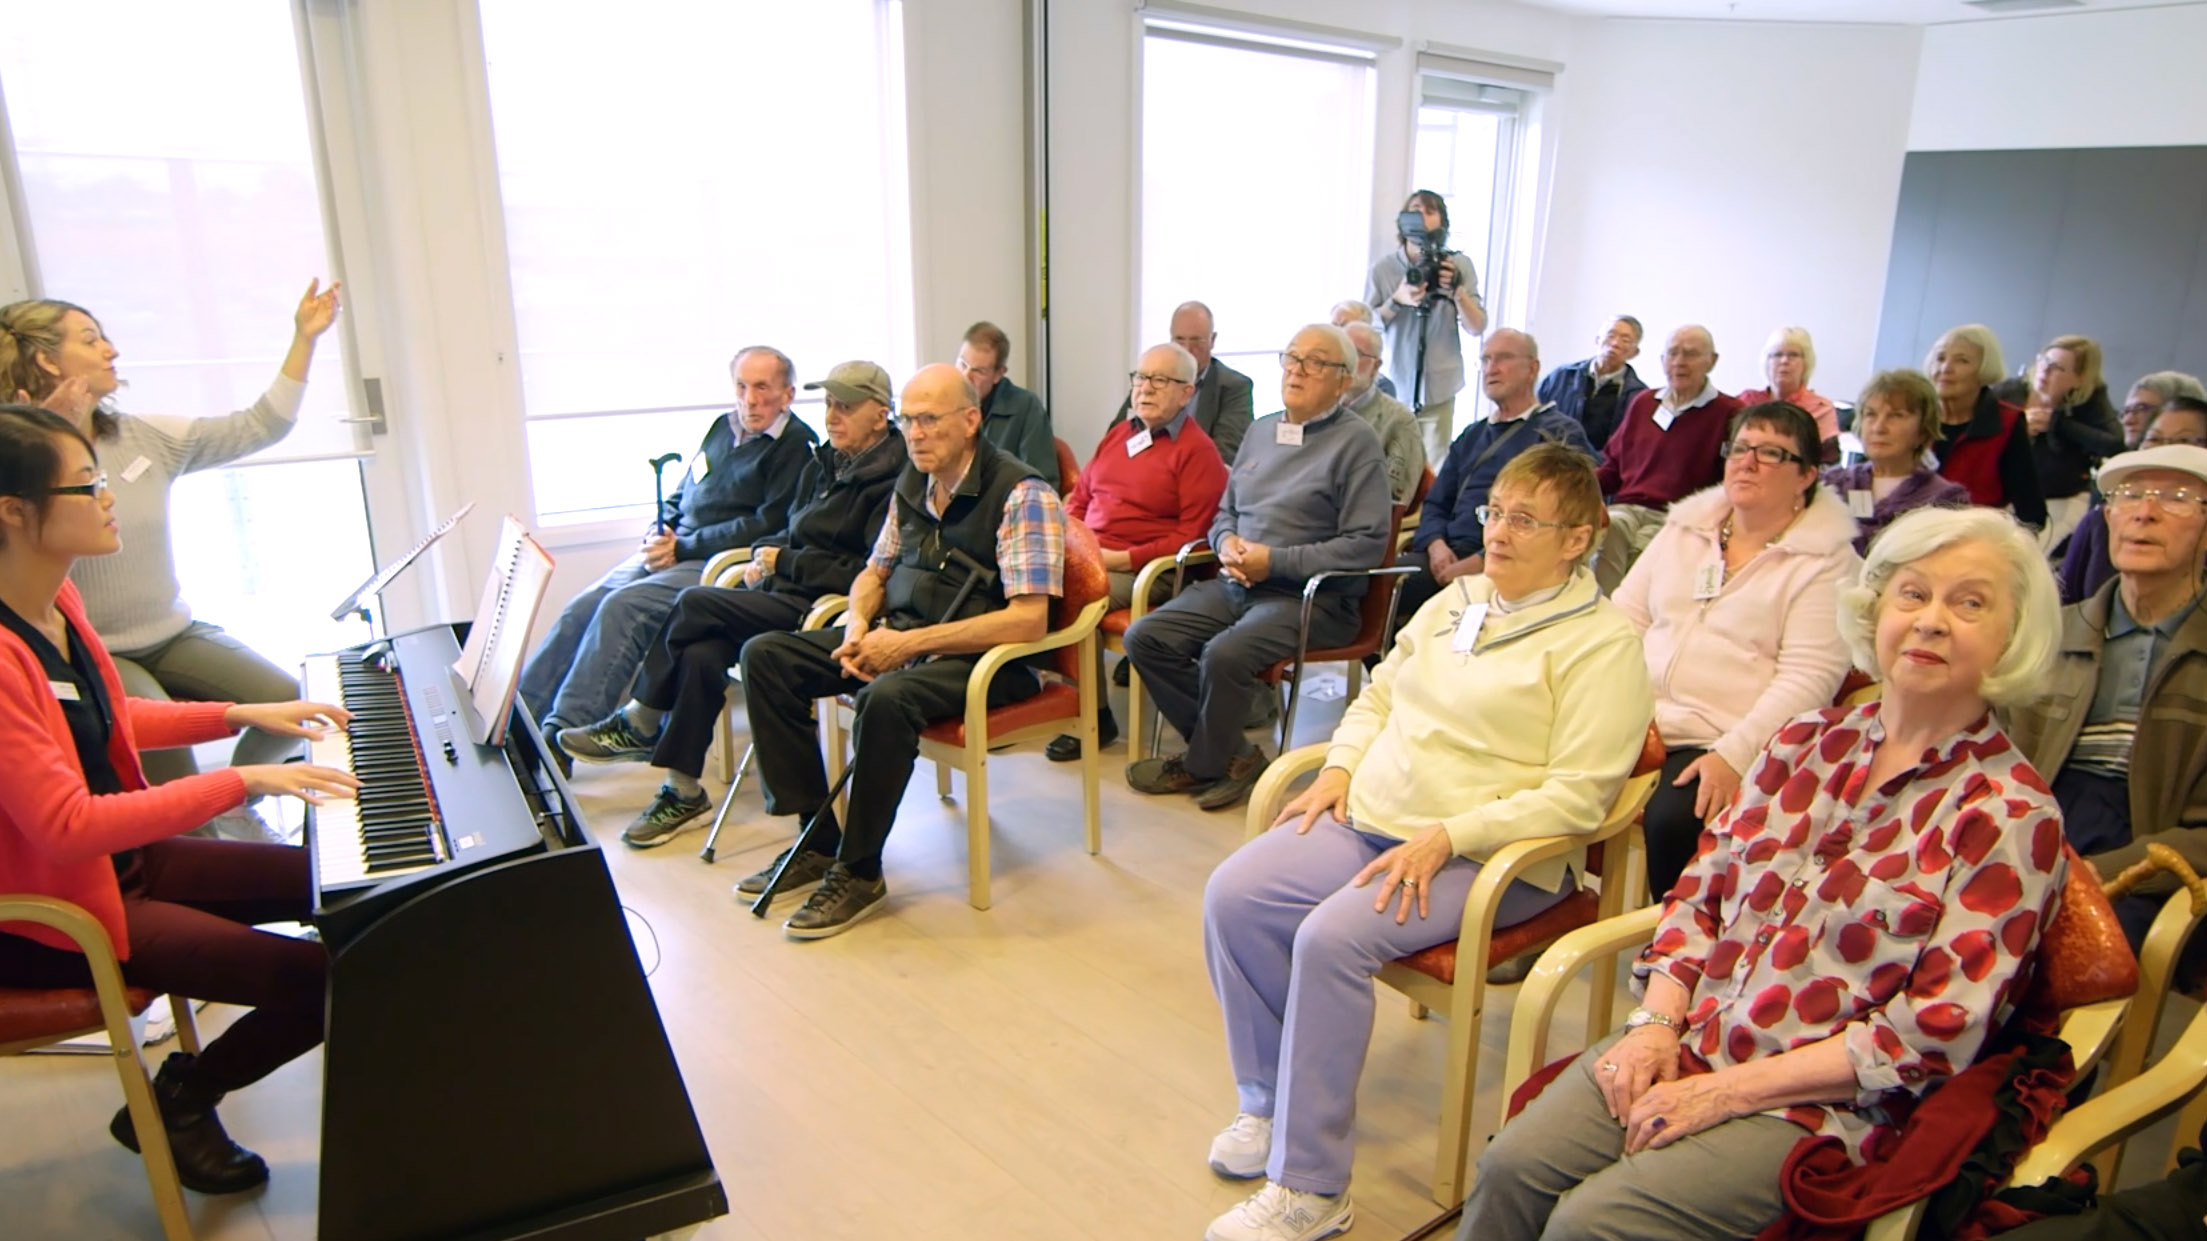 ParkinSong participants and music therapists at a seated group choir session